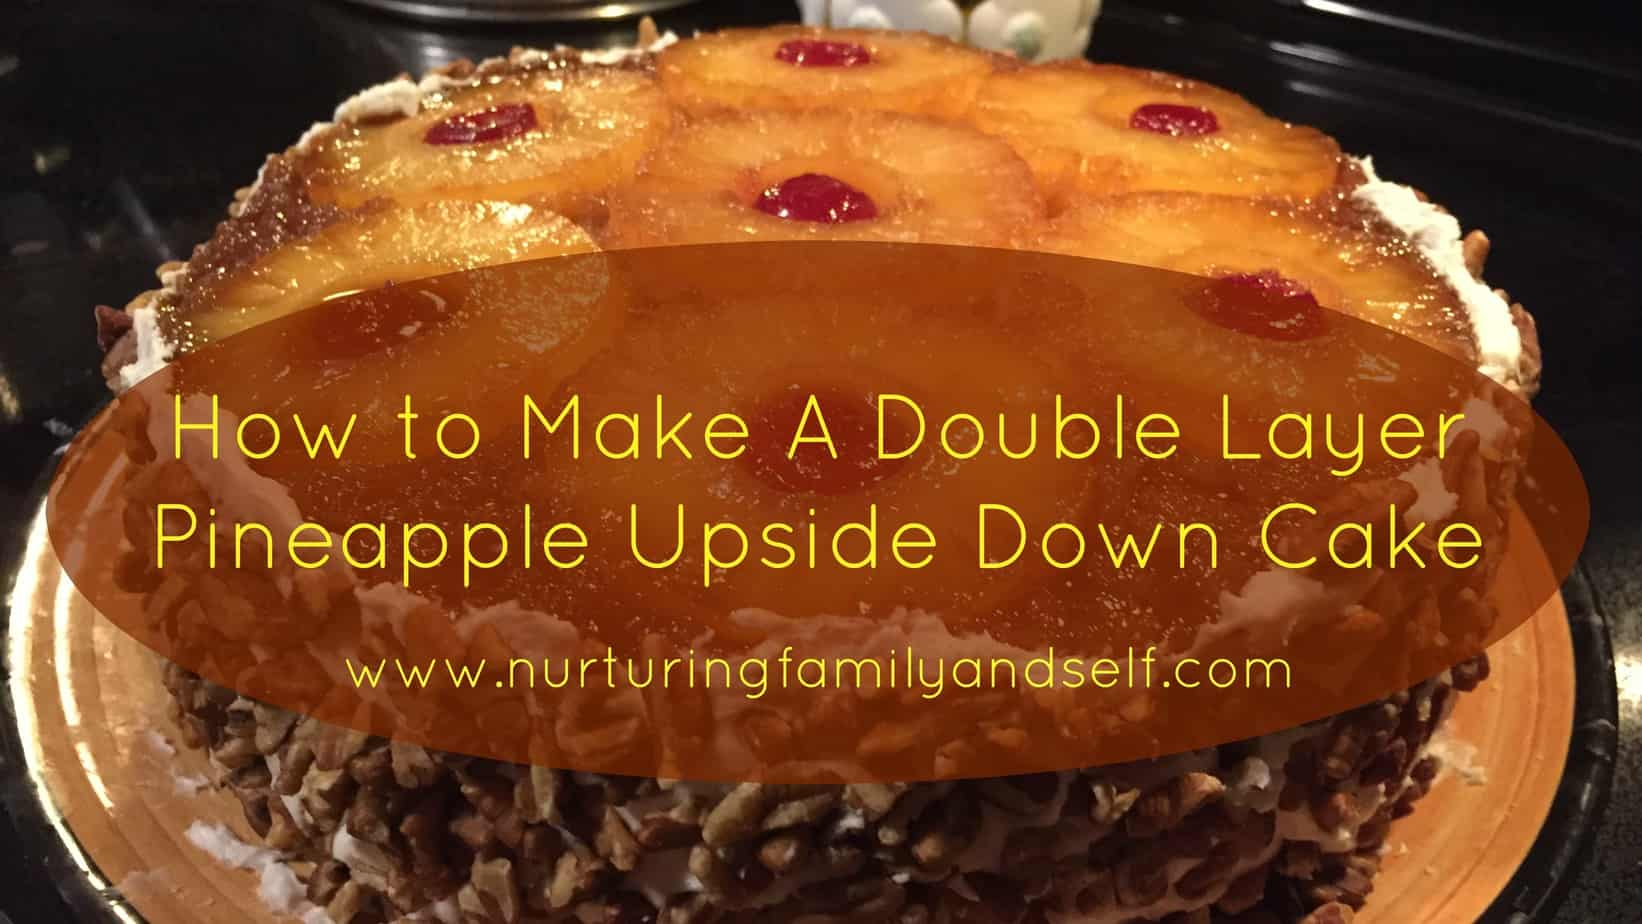 How to Make A Double Layer Pineapple Upside Down Cake Featured Image